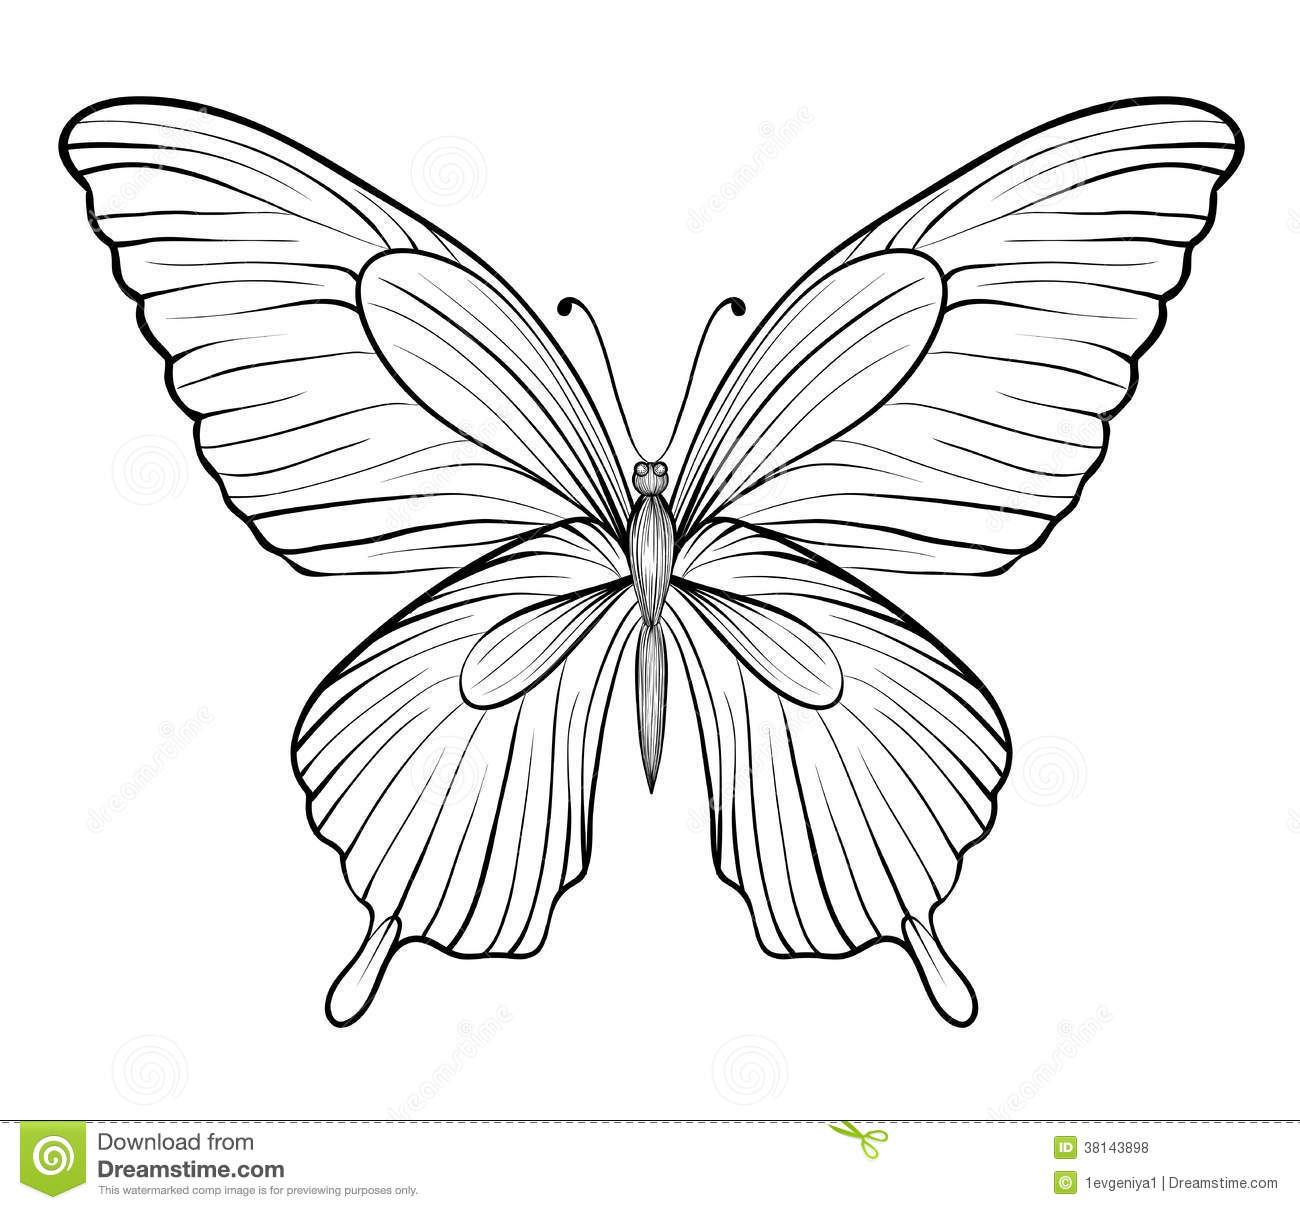 An analysis of white butterfly a novel